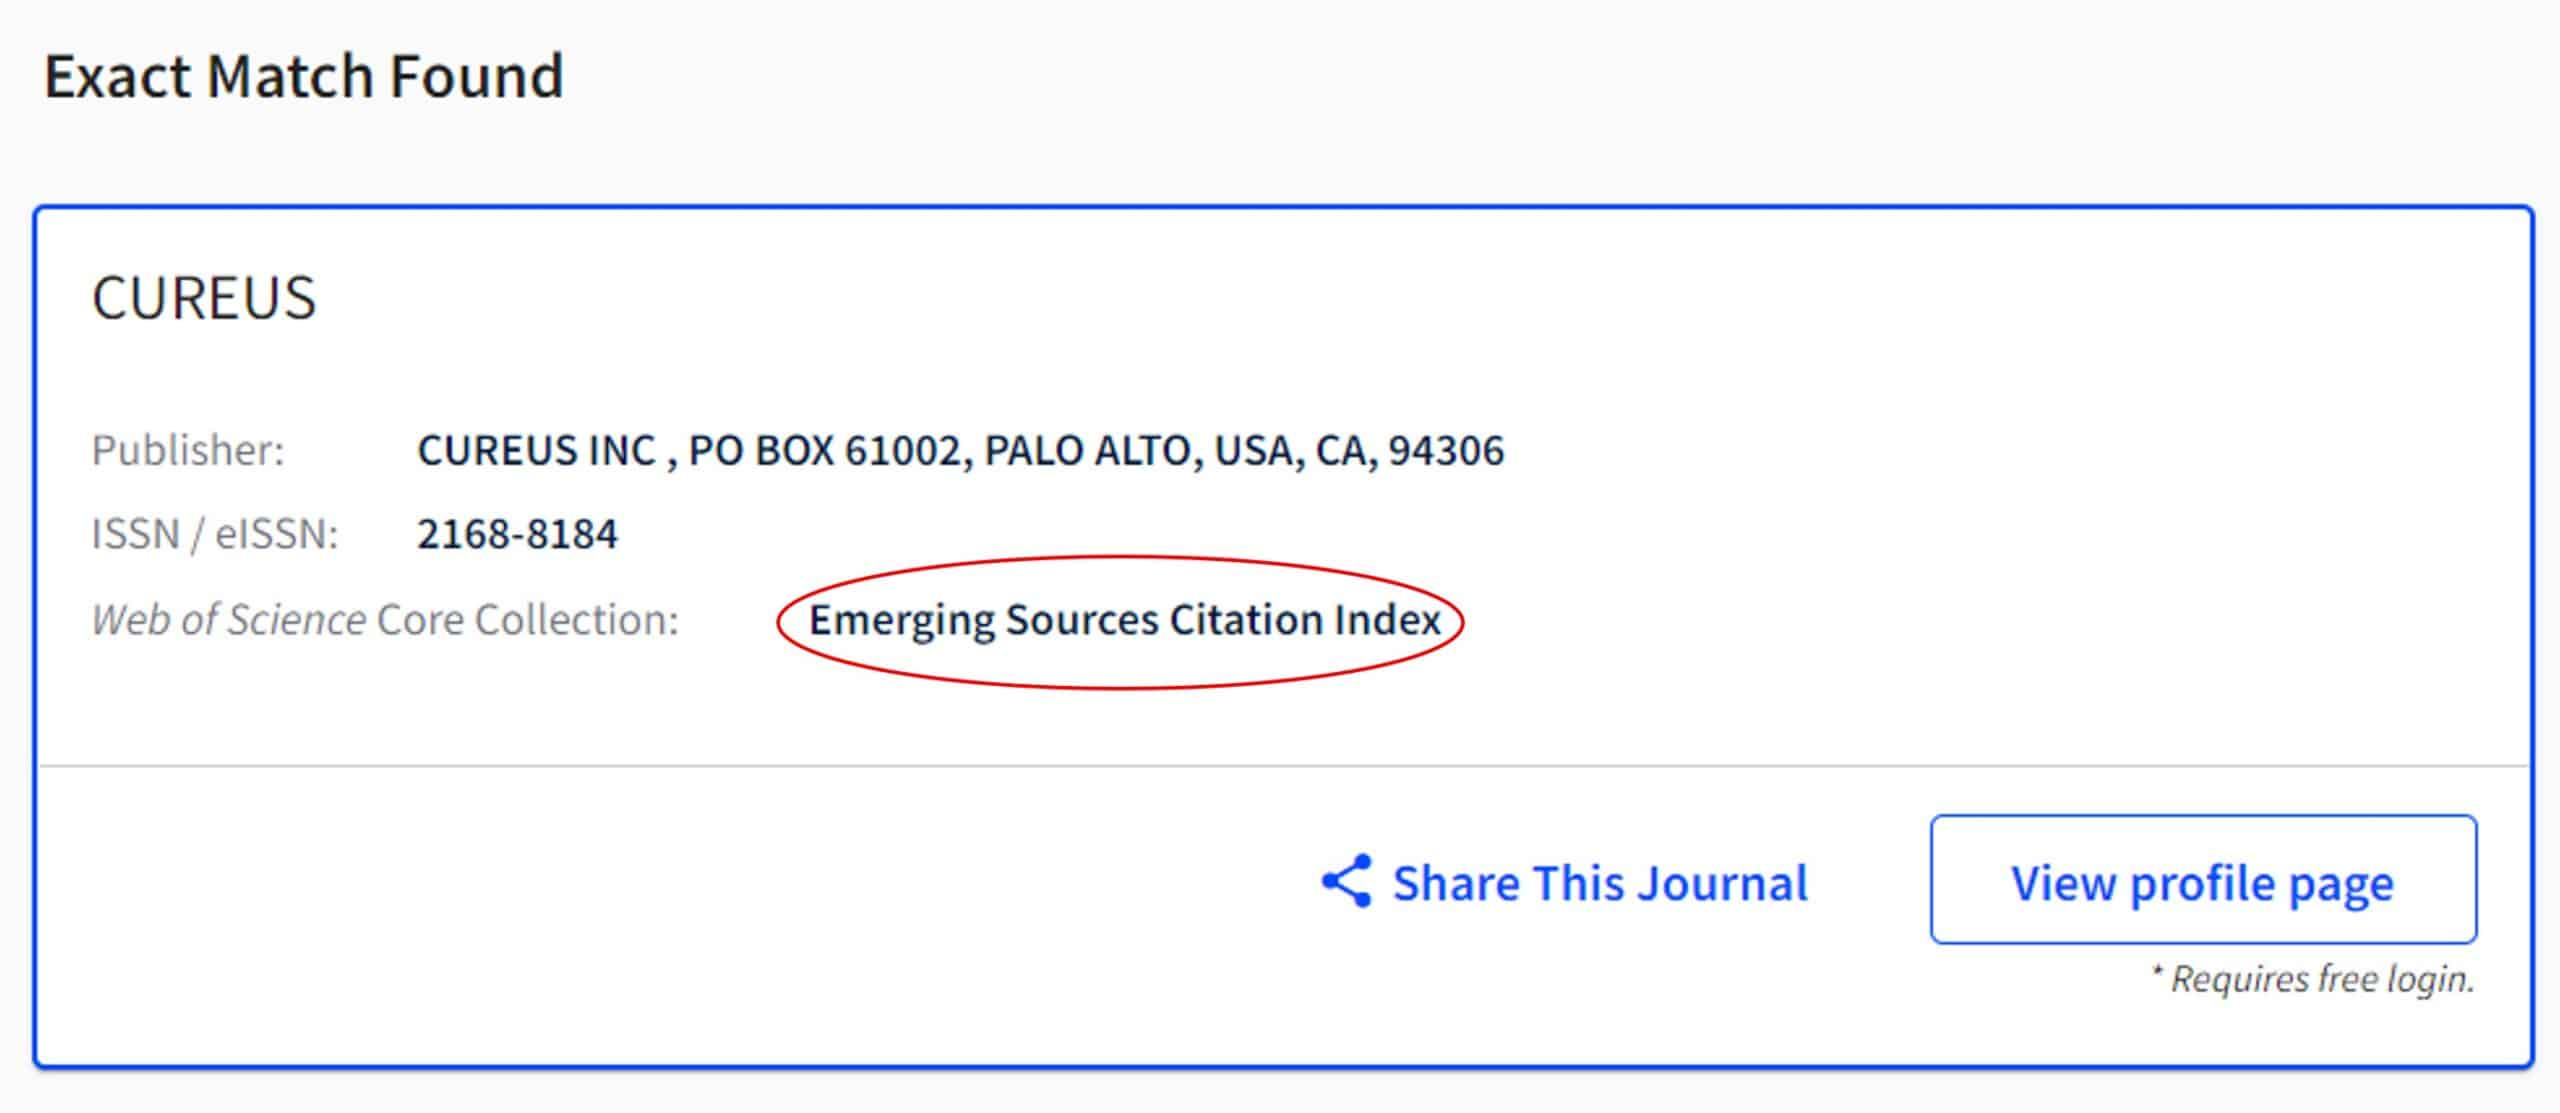 Image describing how to search for a journal on the Web of Science master list. The journal CUREUS is listed here as being indexed in the Emerging Science Citation Index.